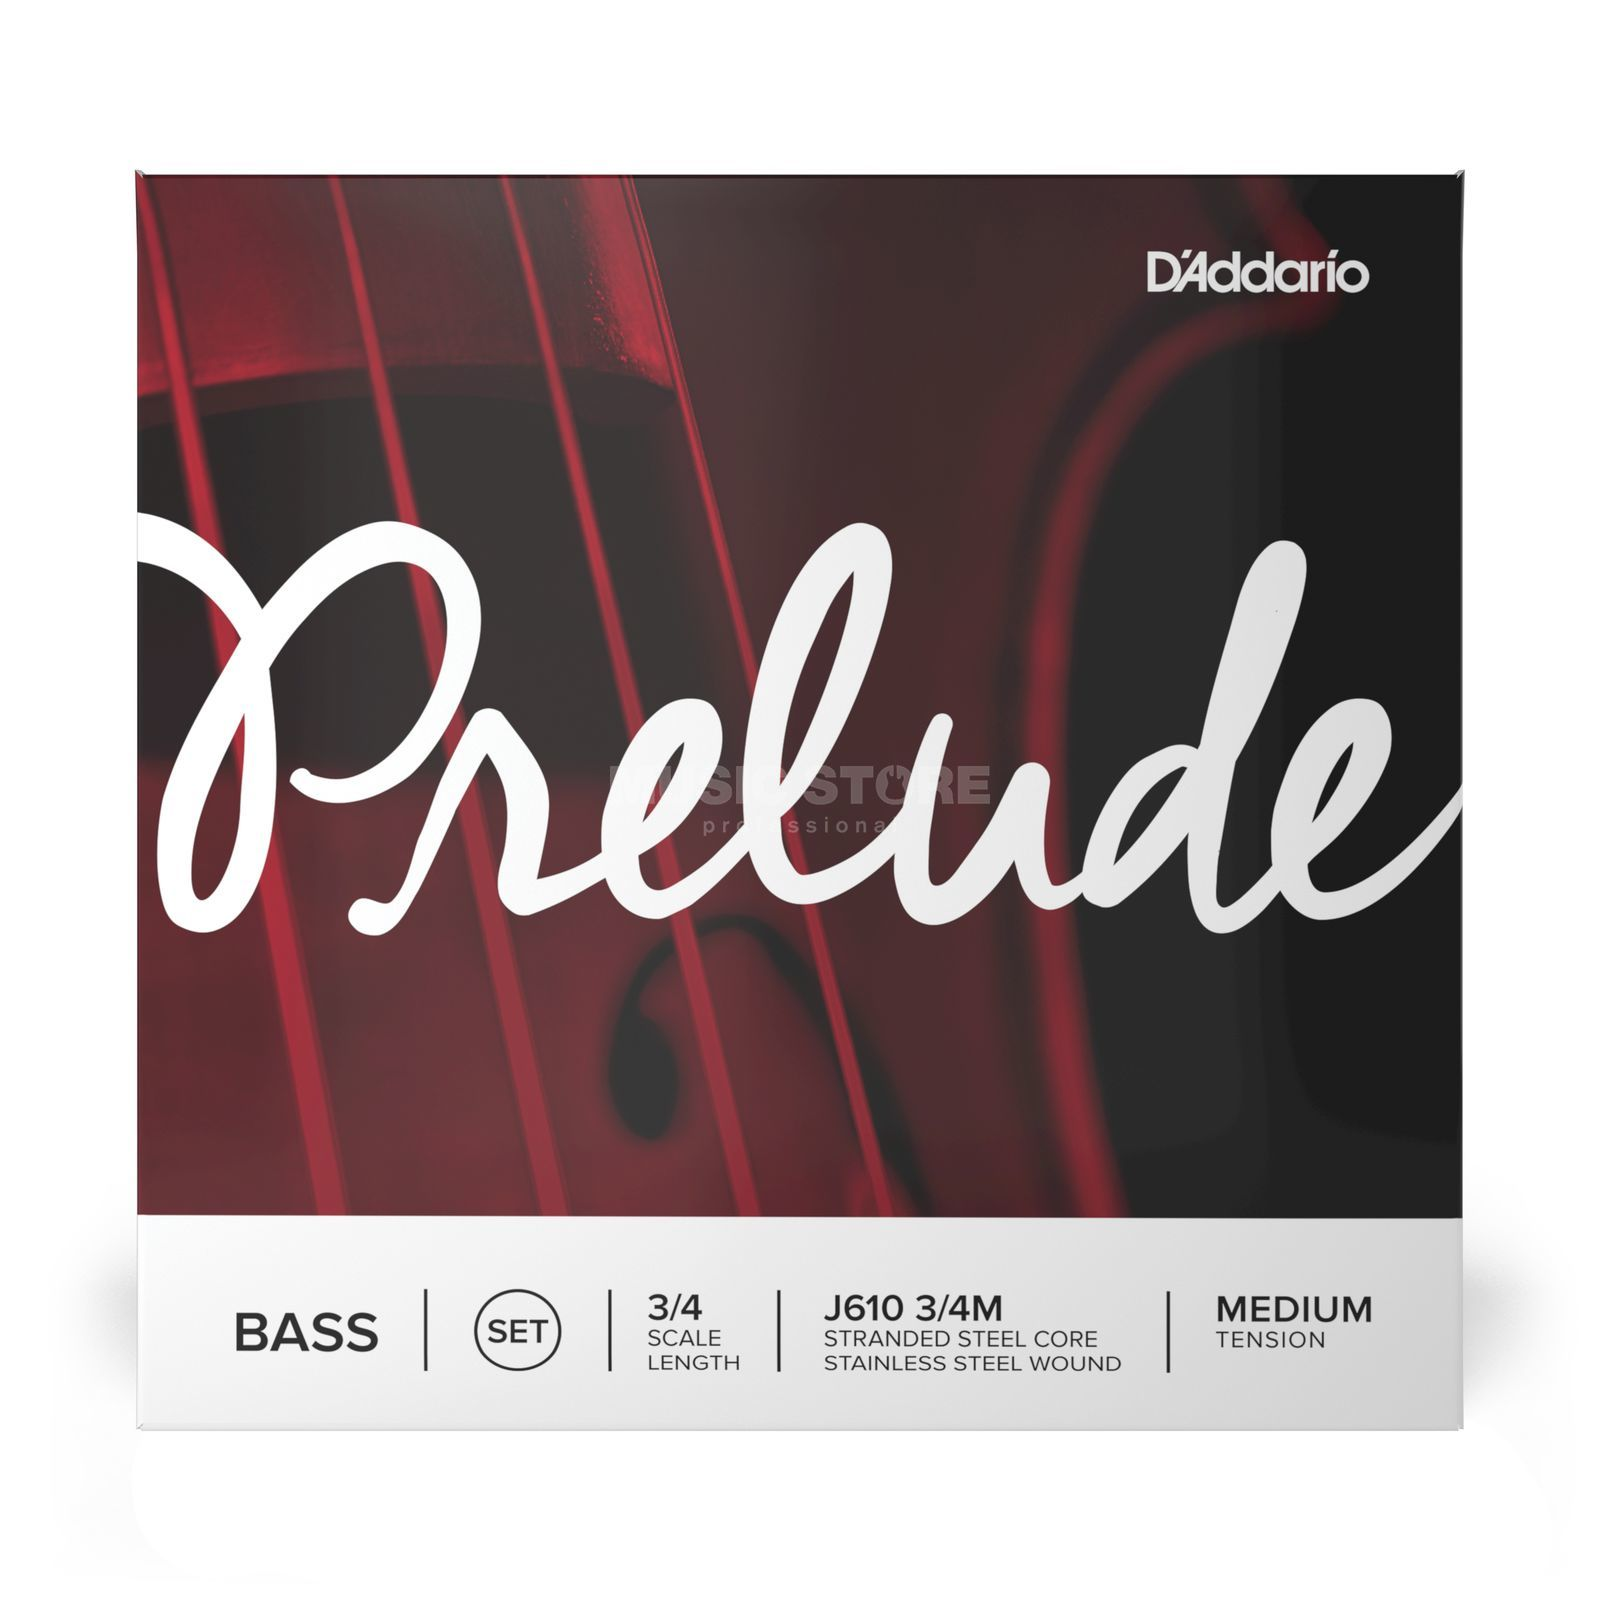 D'Addario Contrabass String Set Prelude 3/4 Medium, steel core, J610 Imagem do produto